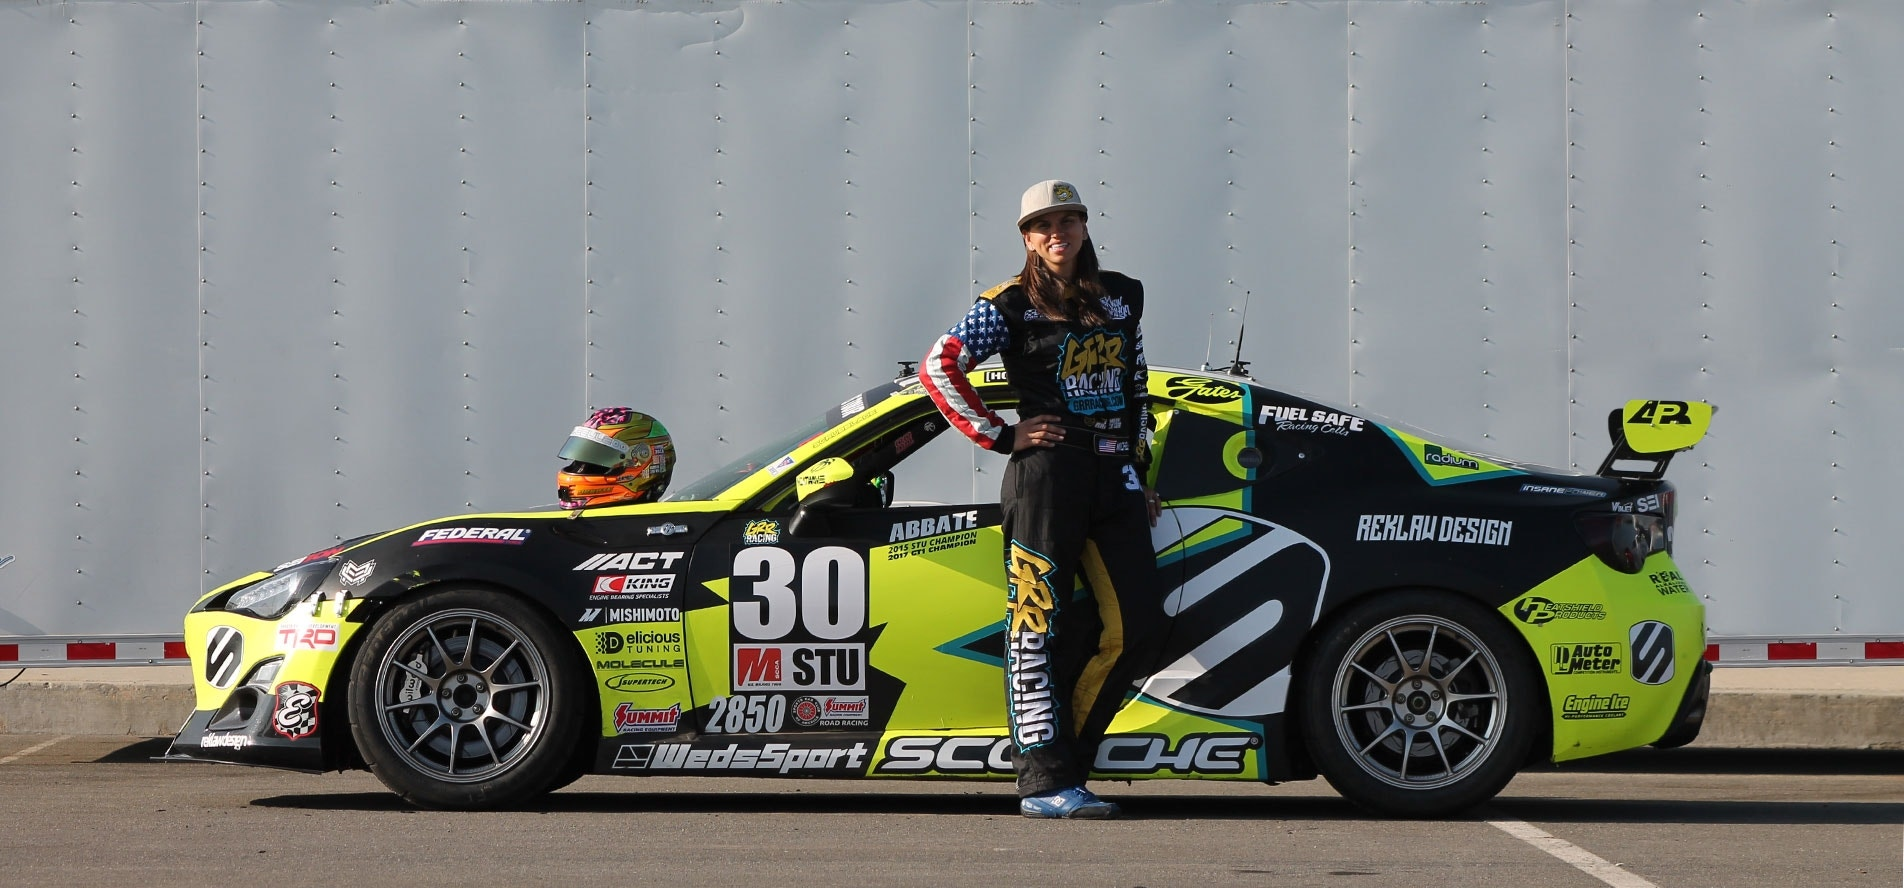 Michelle Abbate Racing Team